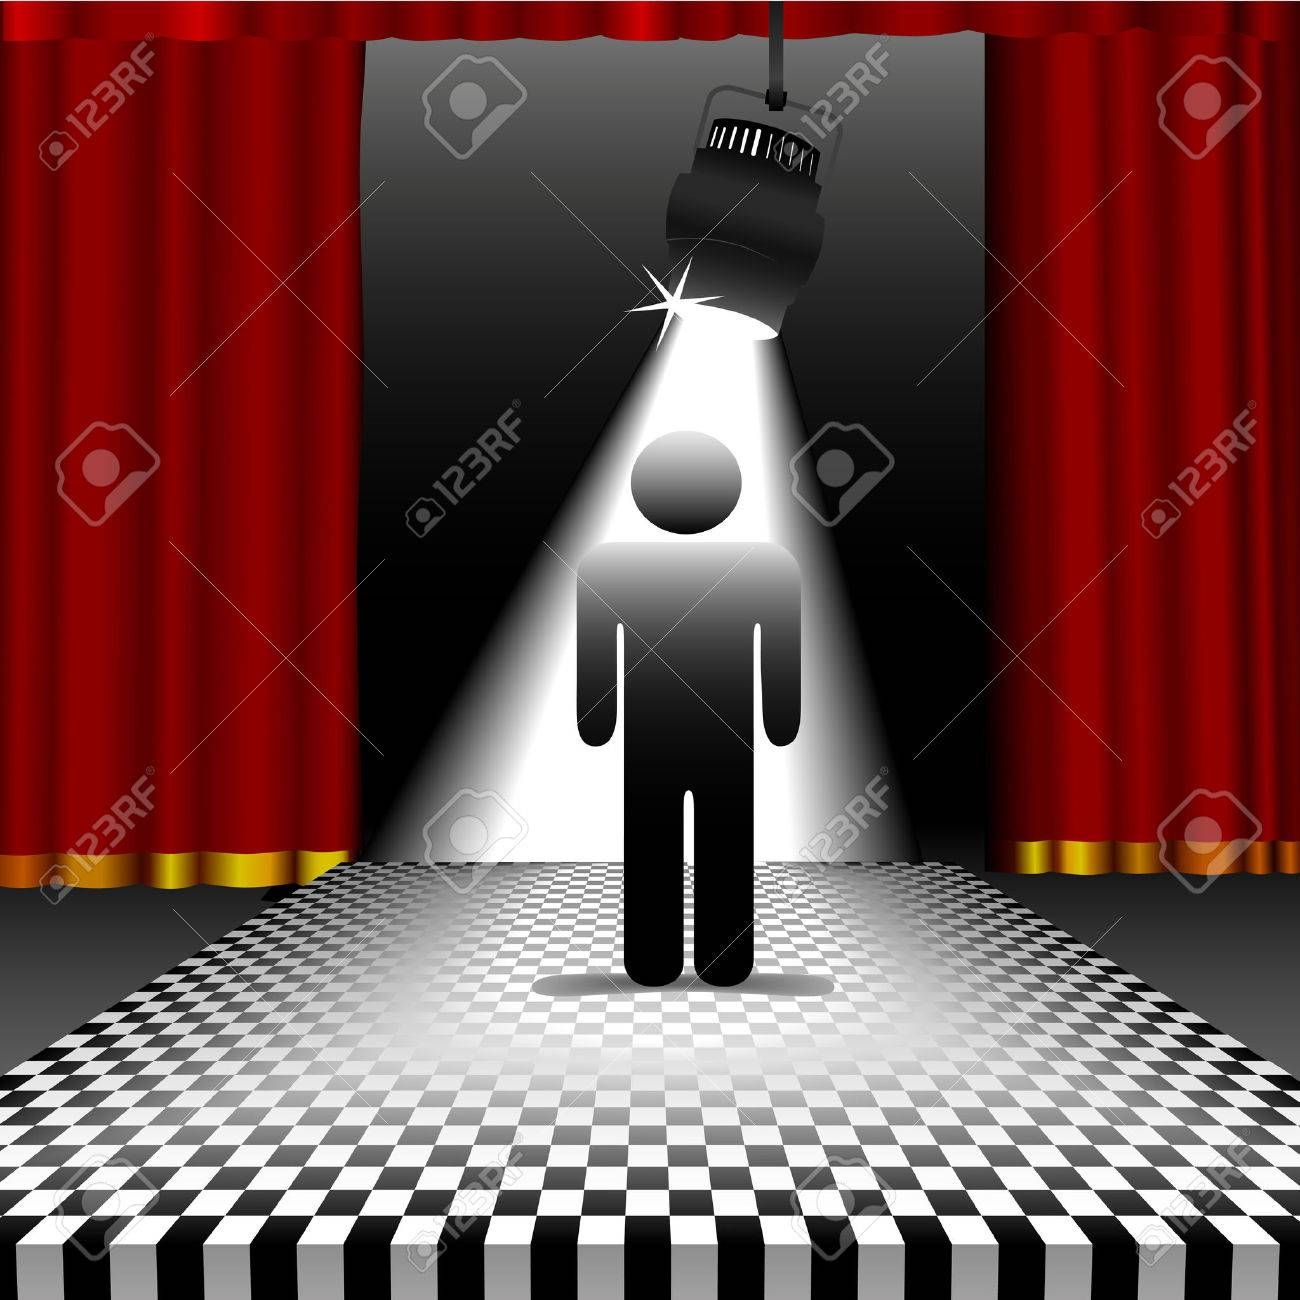 Stage curtains spotlight - A Symbol Person Shines In The Center Of A Checkerboard Stage In The Spotlight With Red